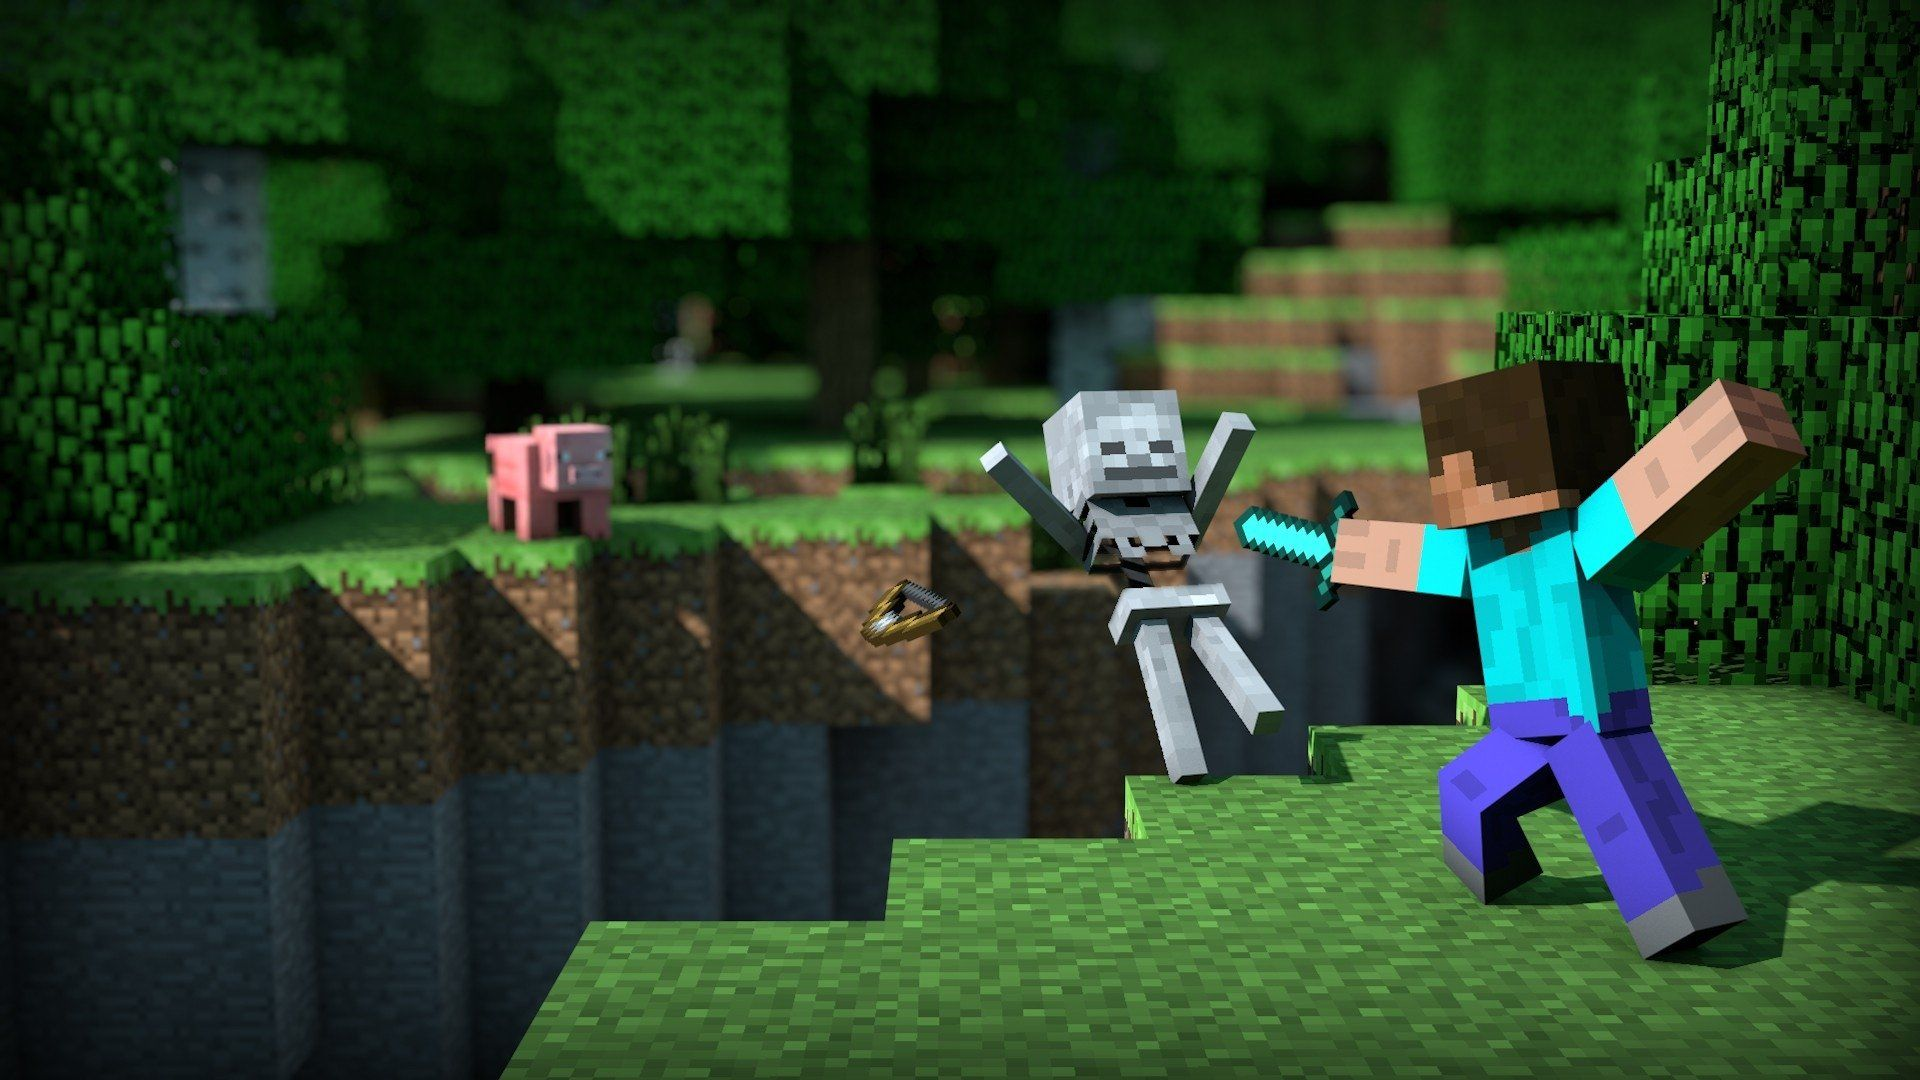 Minecraft Pc Wallpapers Top Free Minecraft Pc Backgrounds